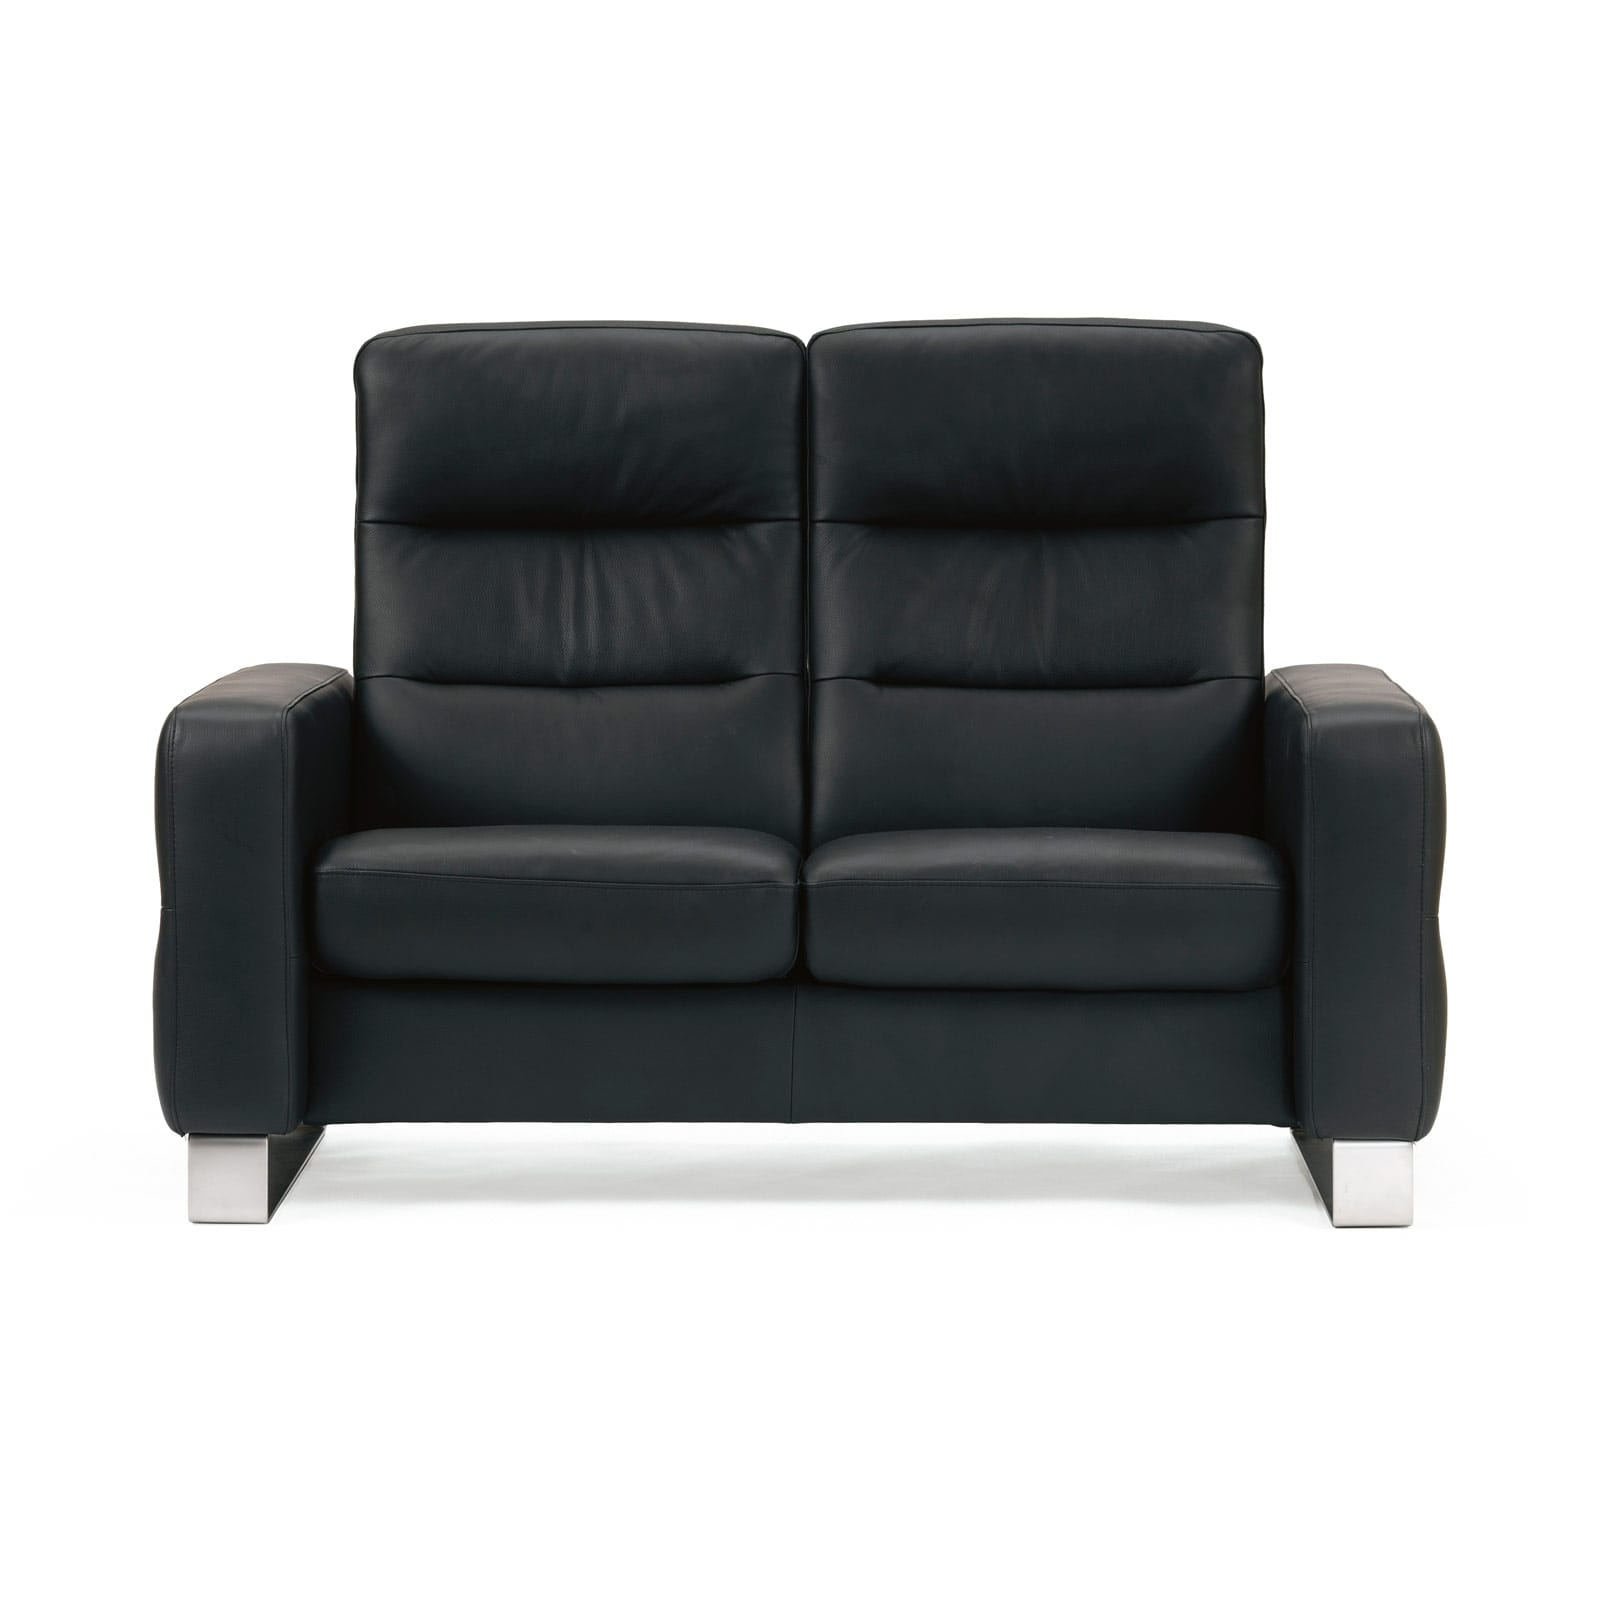 stressless sofa 2 sitzer wave m hoch paloma black stressless. Black Bedroom Furniture Sets. Home Design Ideas